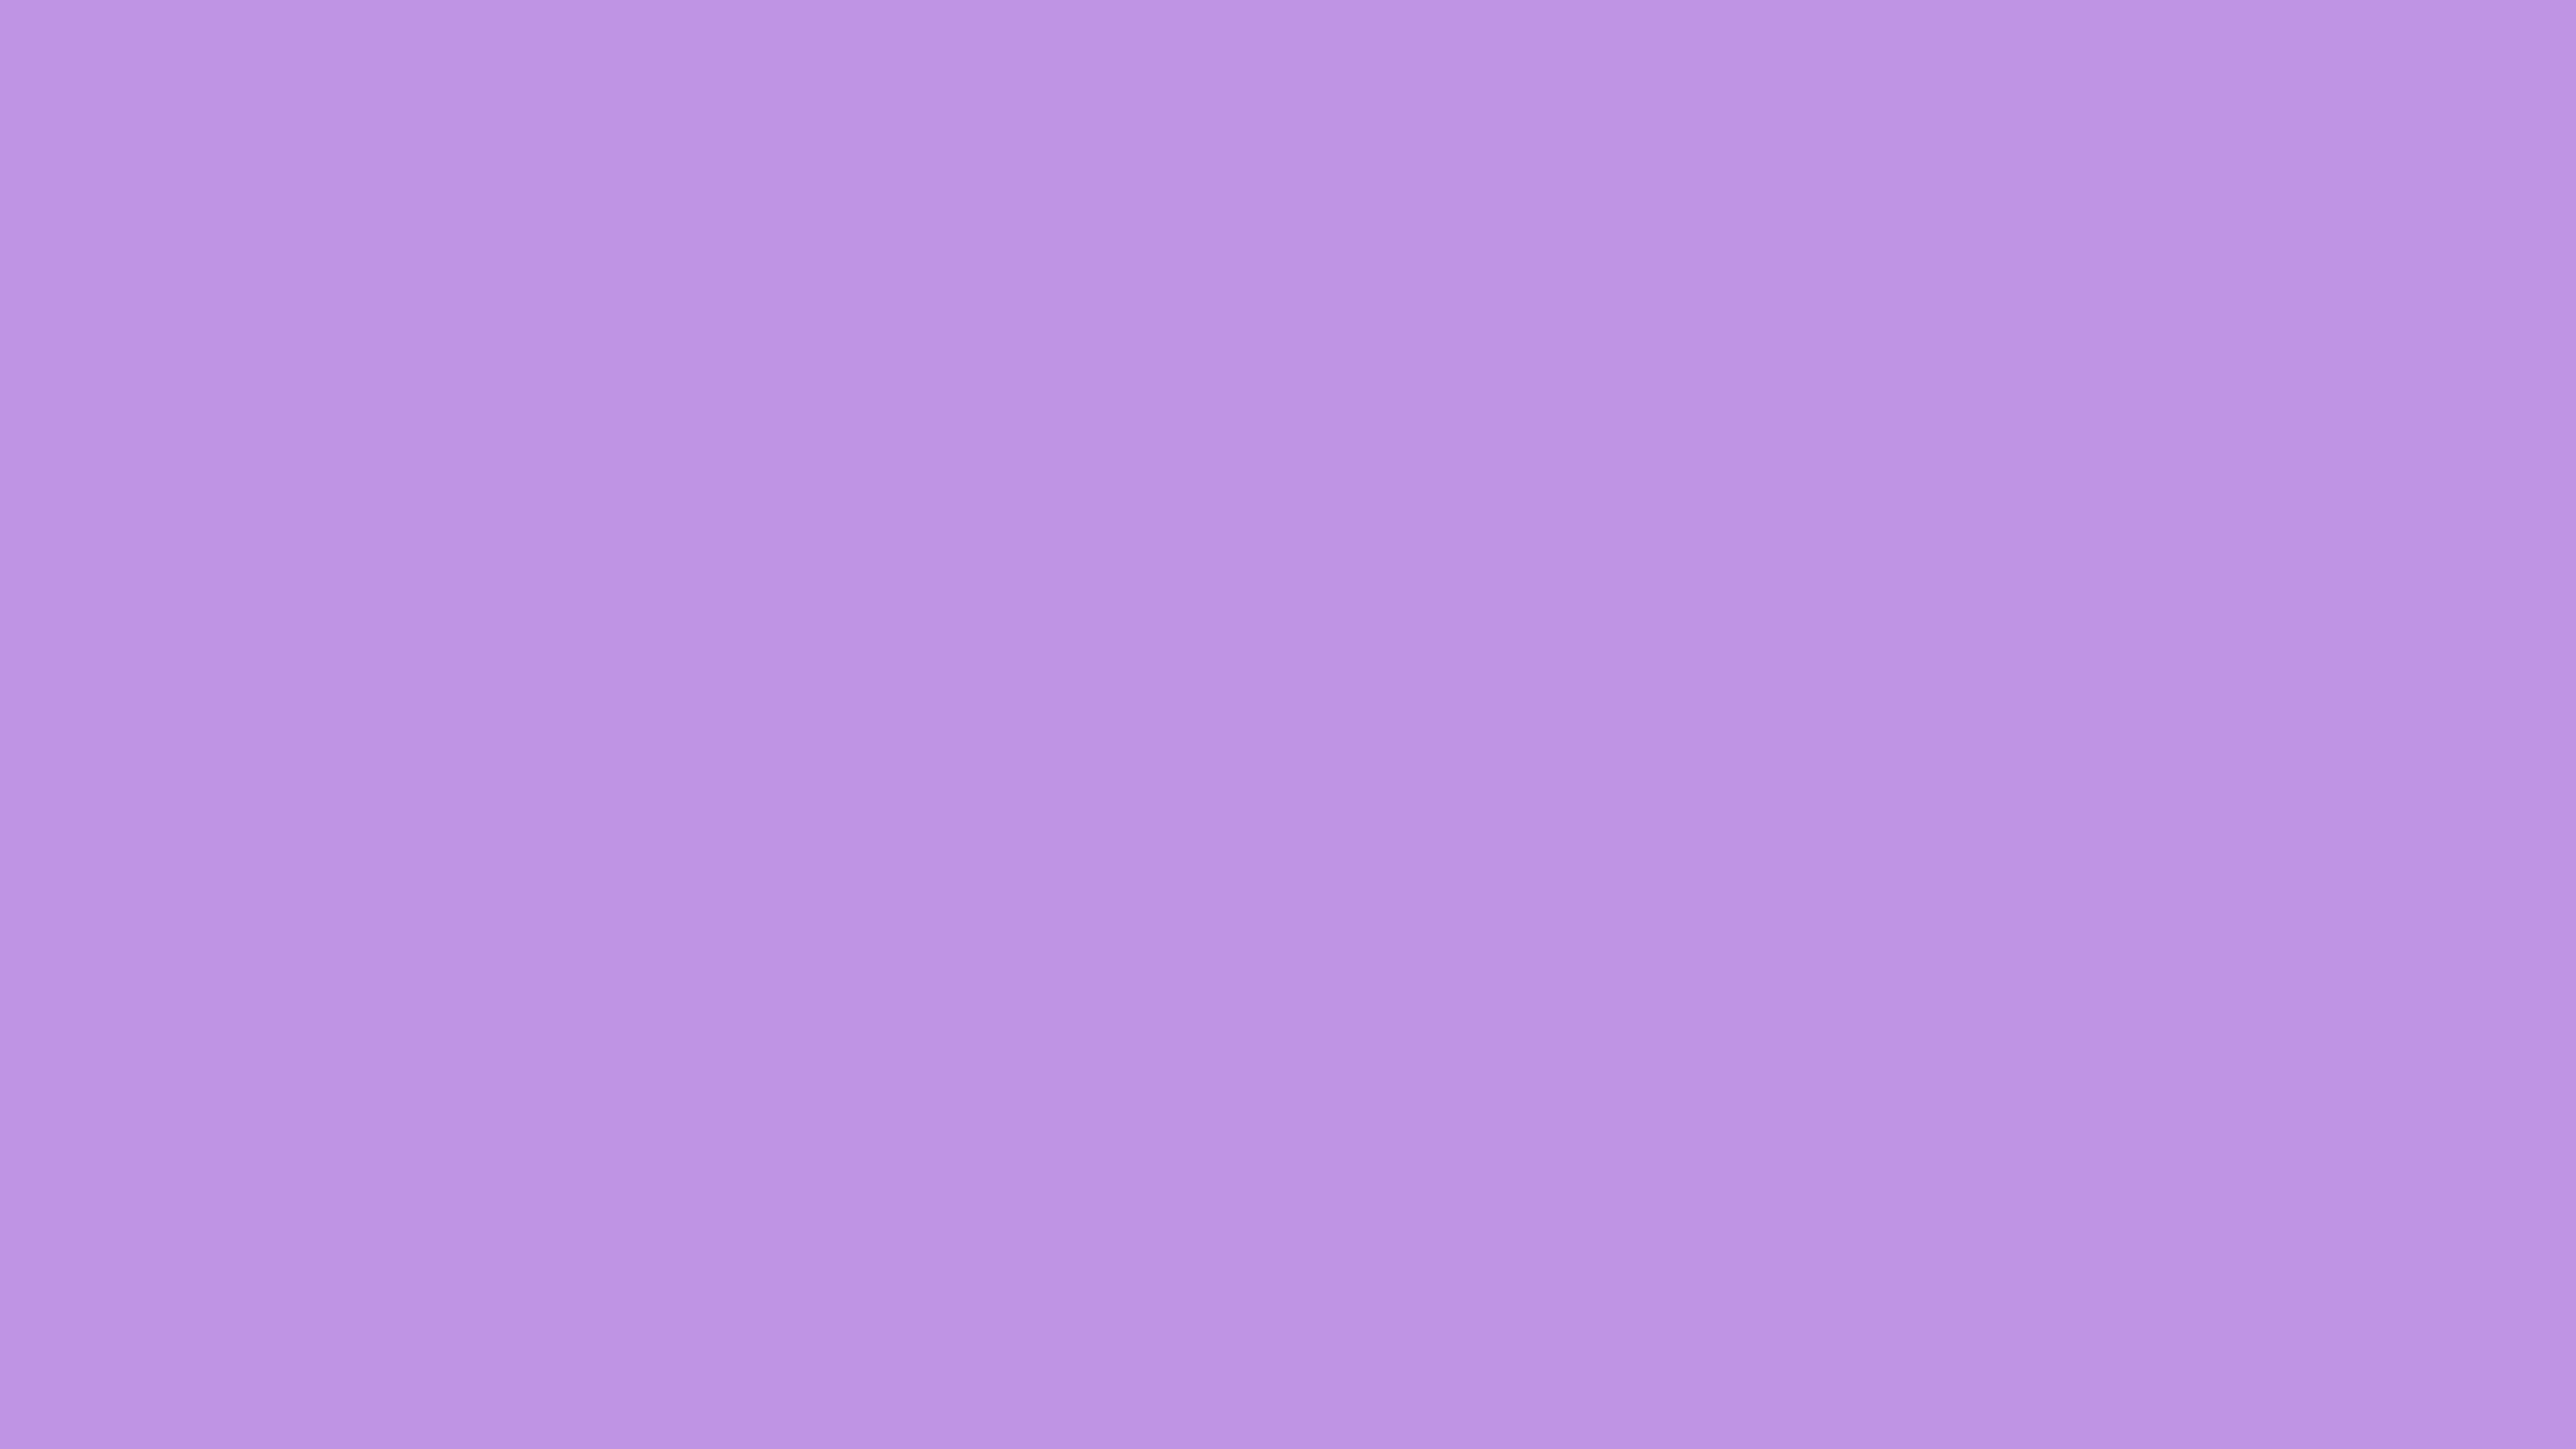 5120x2880 Bright Lavender Solid Color Background